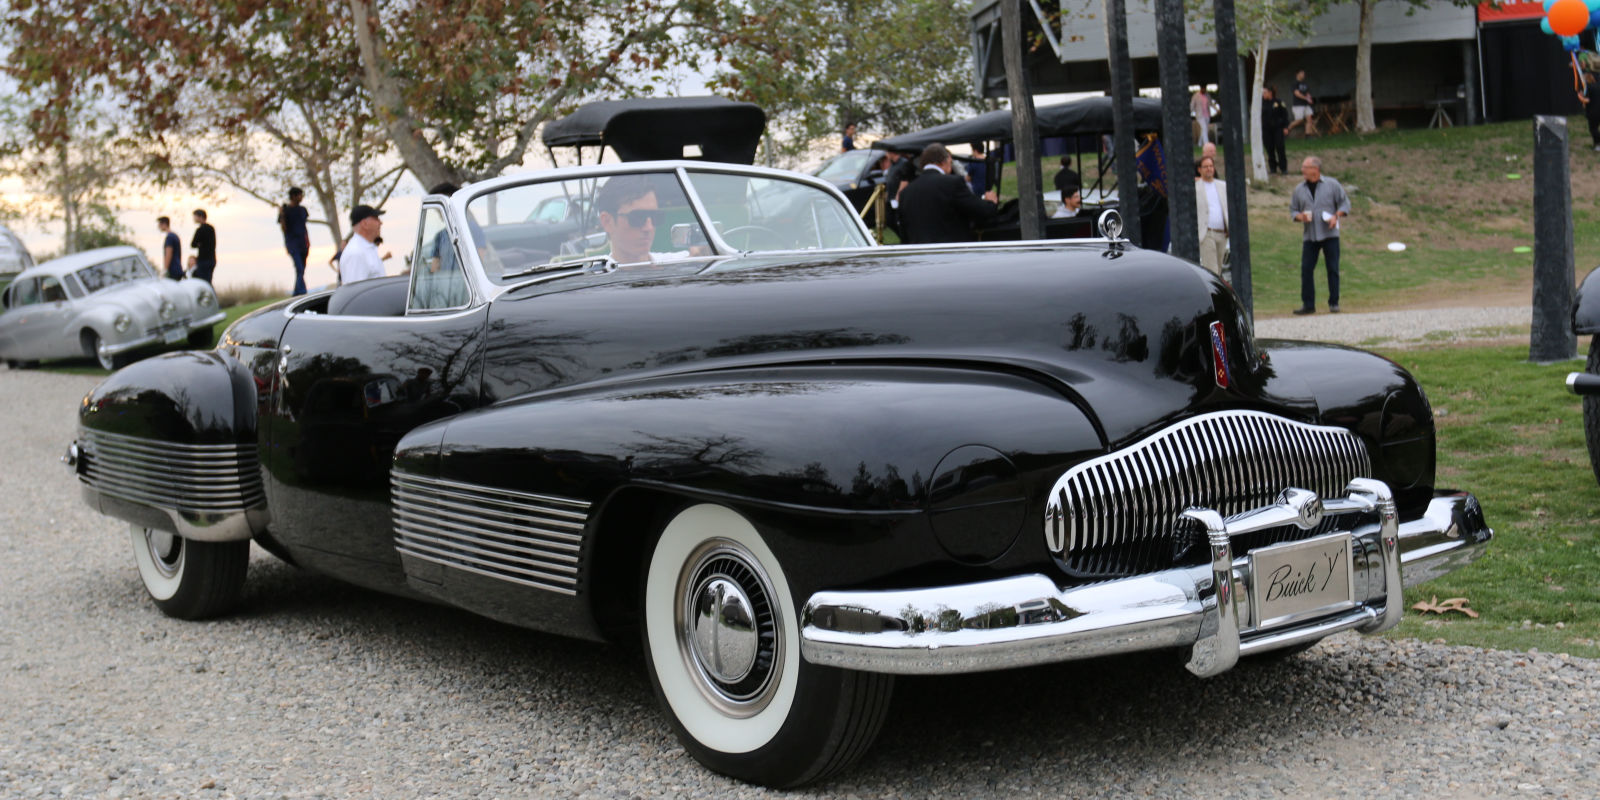 What are some differences with the safety features on a modern car and a early car?